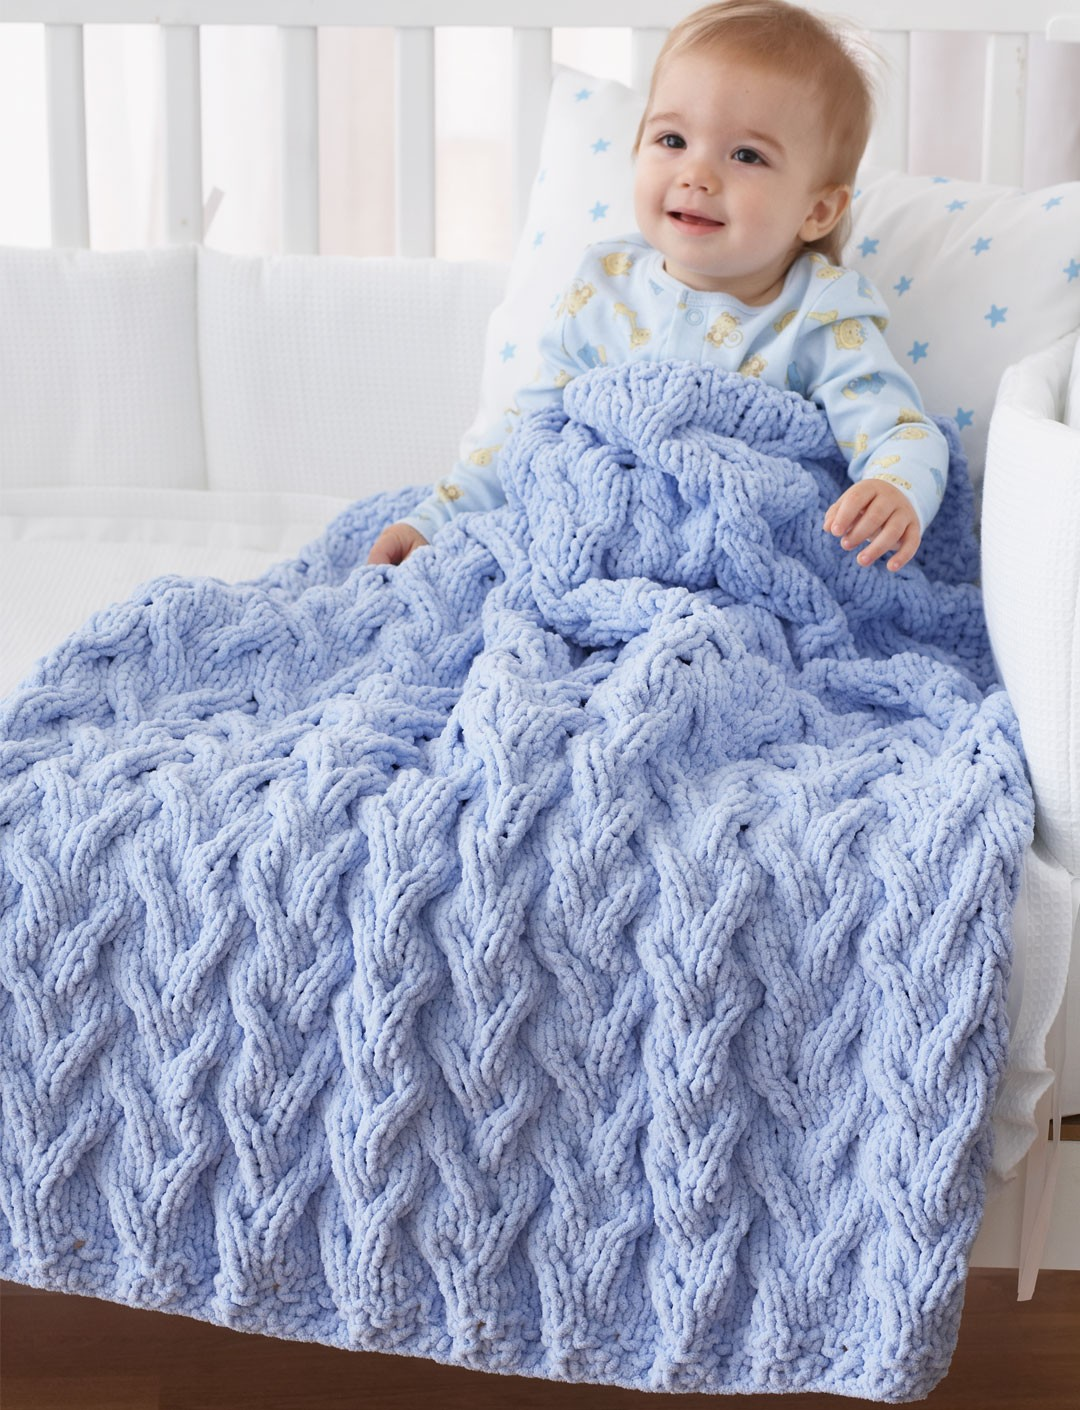 Bernat Shadow Cable Baby Blanket, Knit Pattern ...